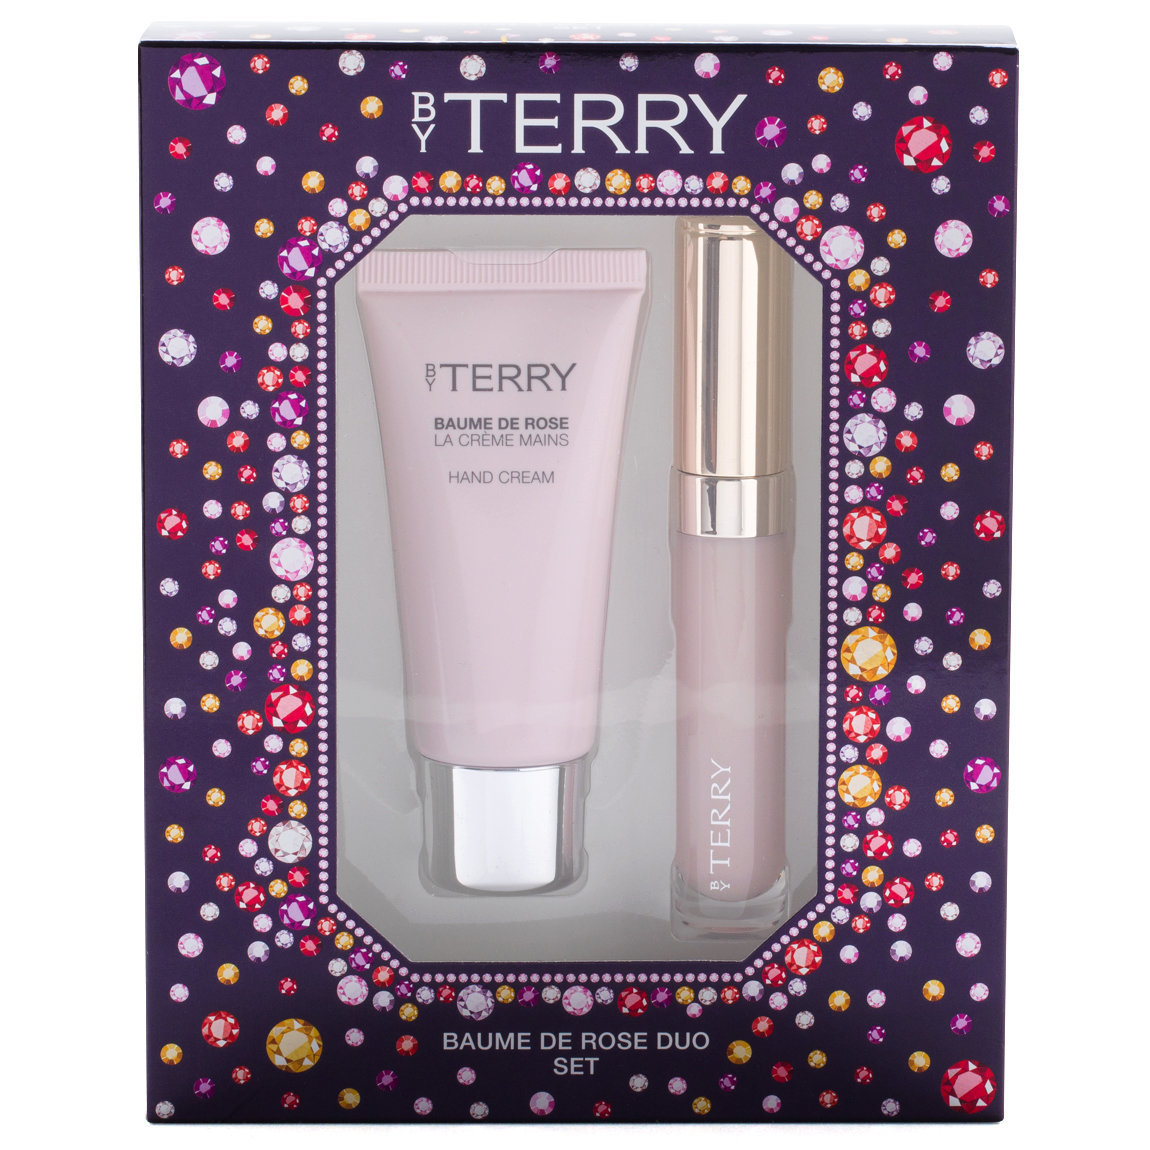 BY TERRY Gem Glow Baume De Rose Set product smear.